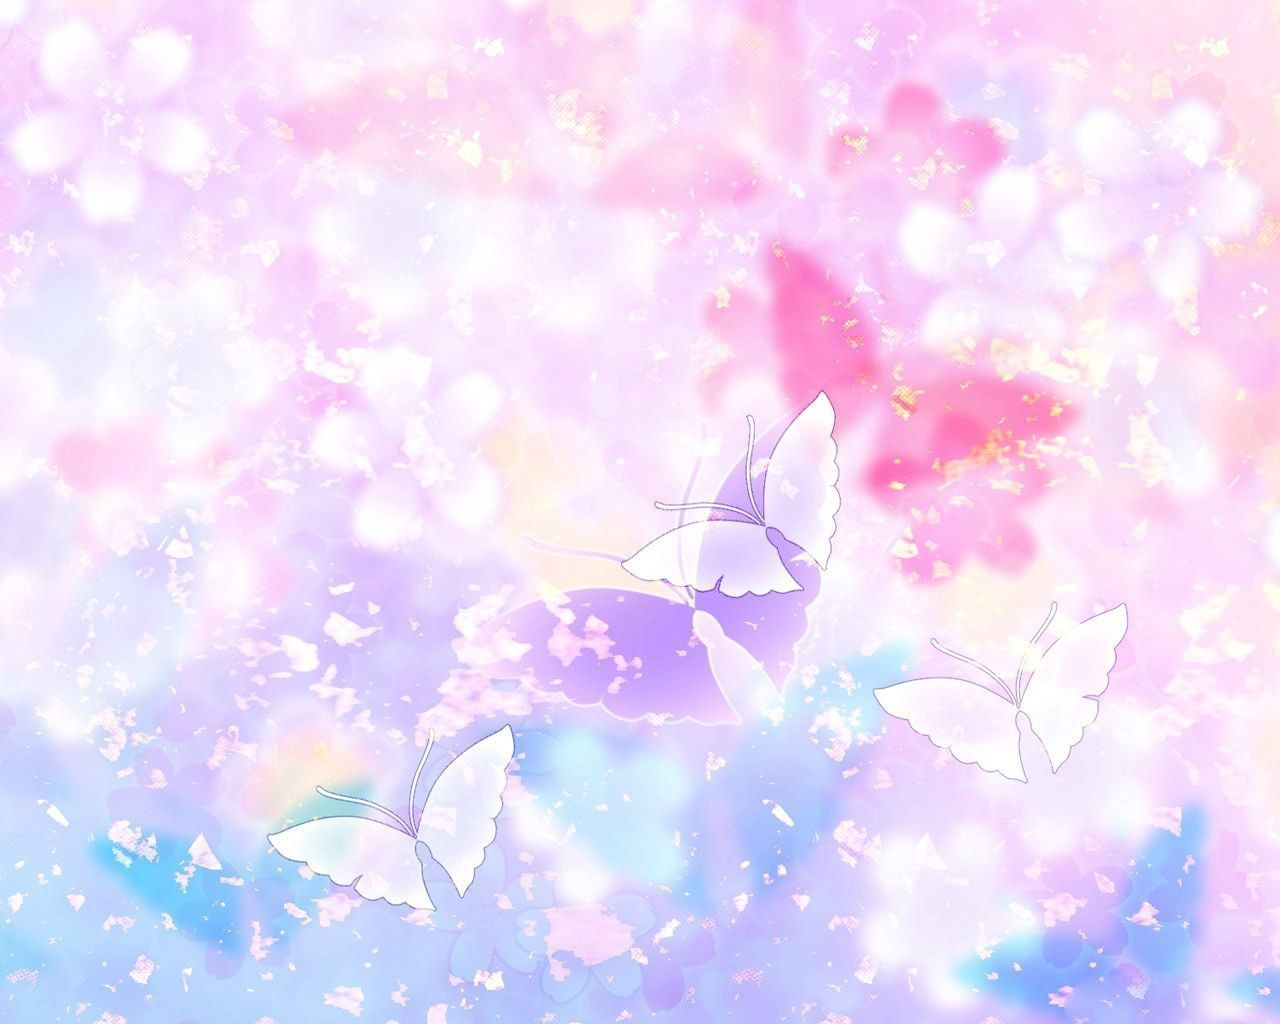 Wallpaper clipart pink Butterfly Wallpapers Pink Free Wallpaper